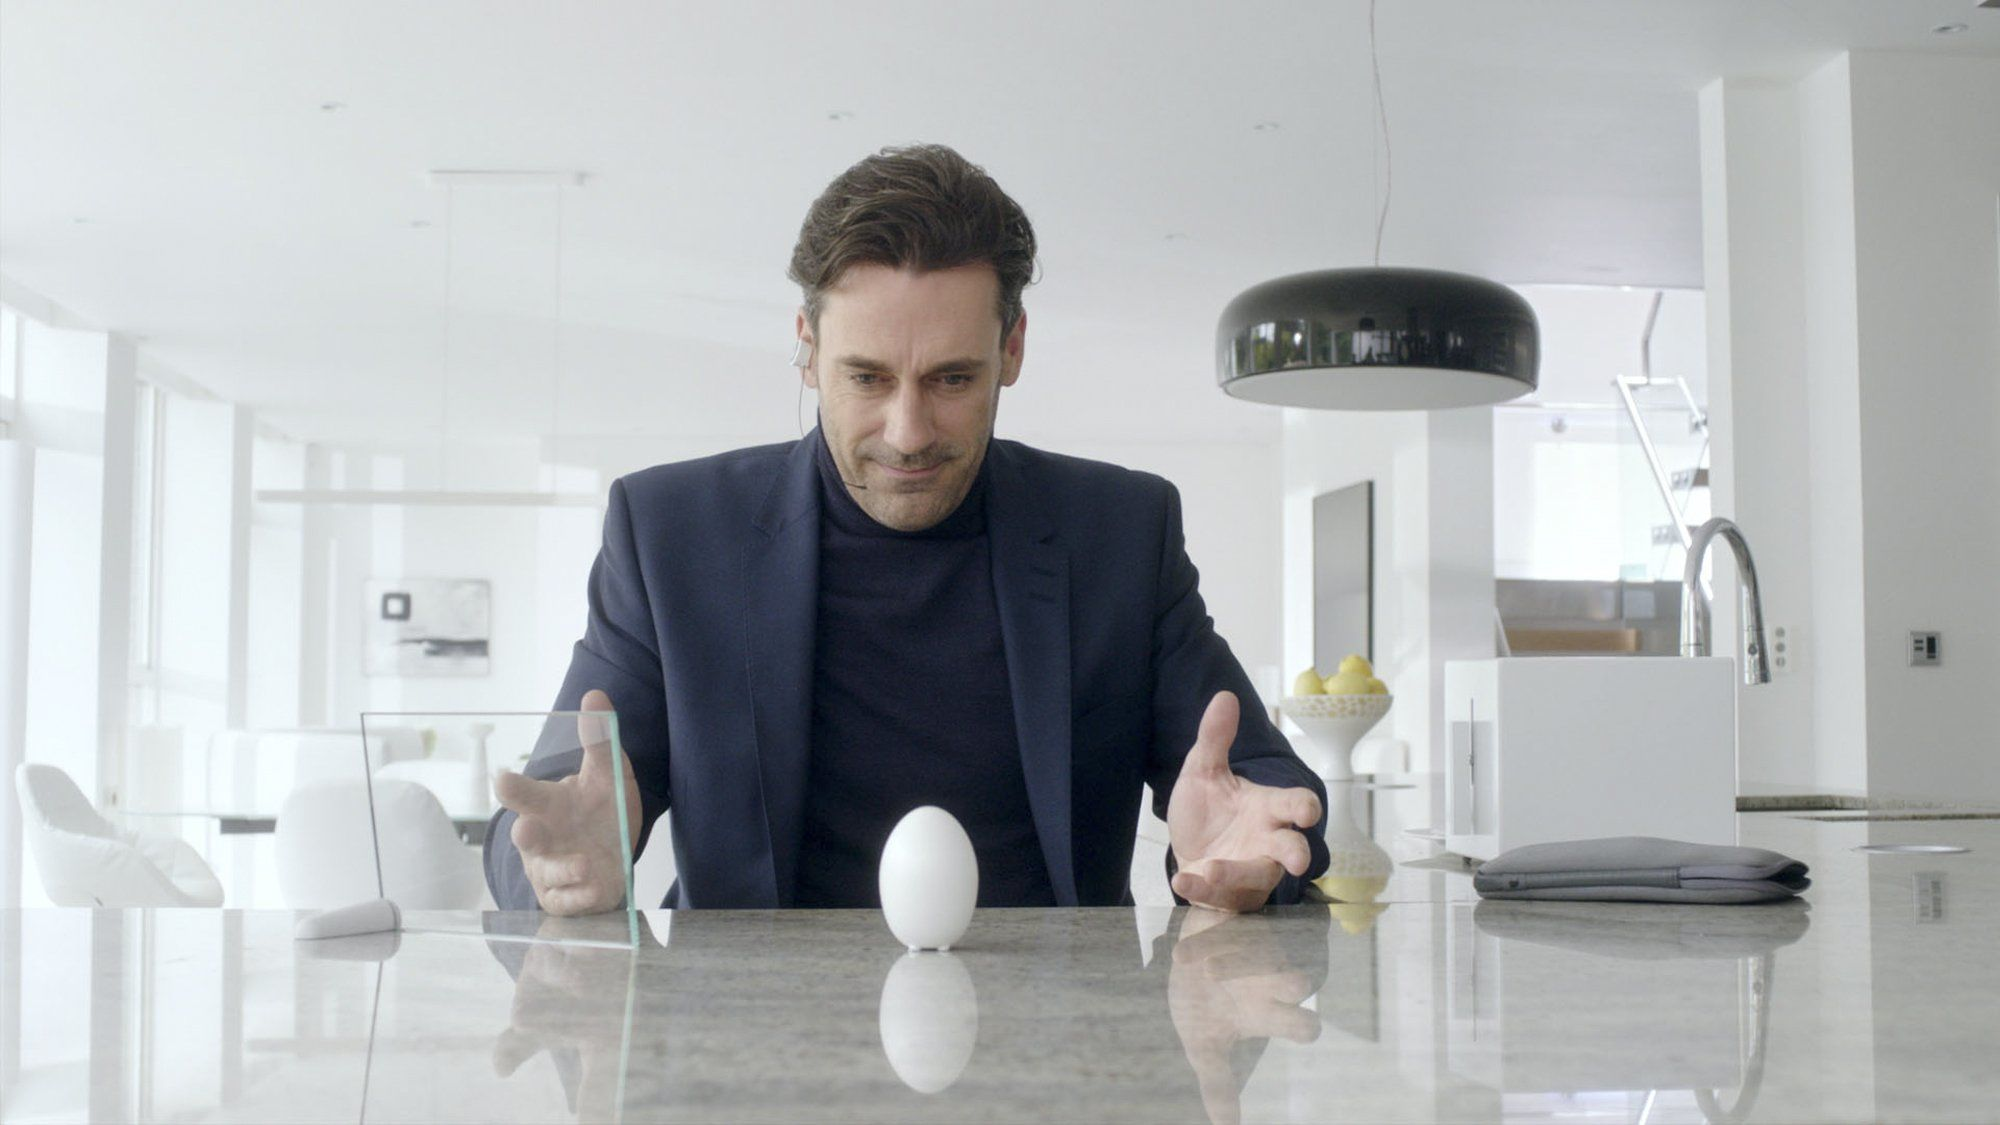 Man from Black Mirror's White Christmas episode, beholding an egg on a table